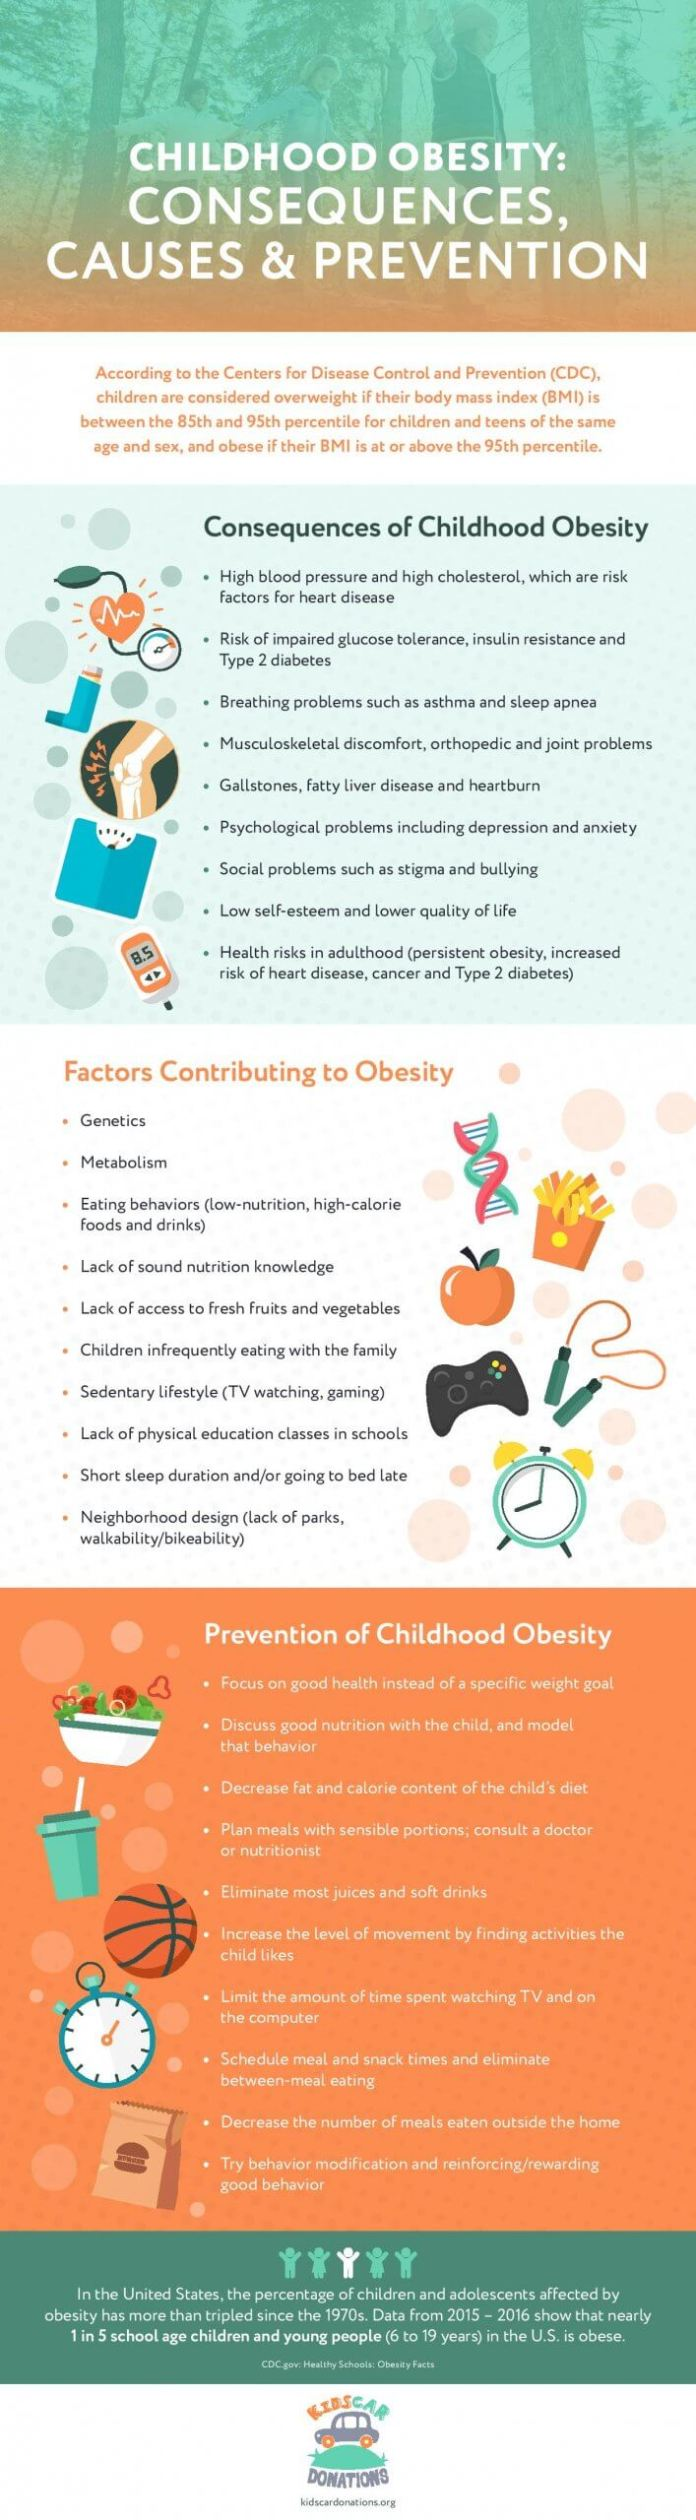 Effects, Causes & Prevention of Childhood Obesity